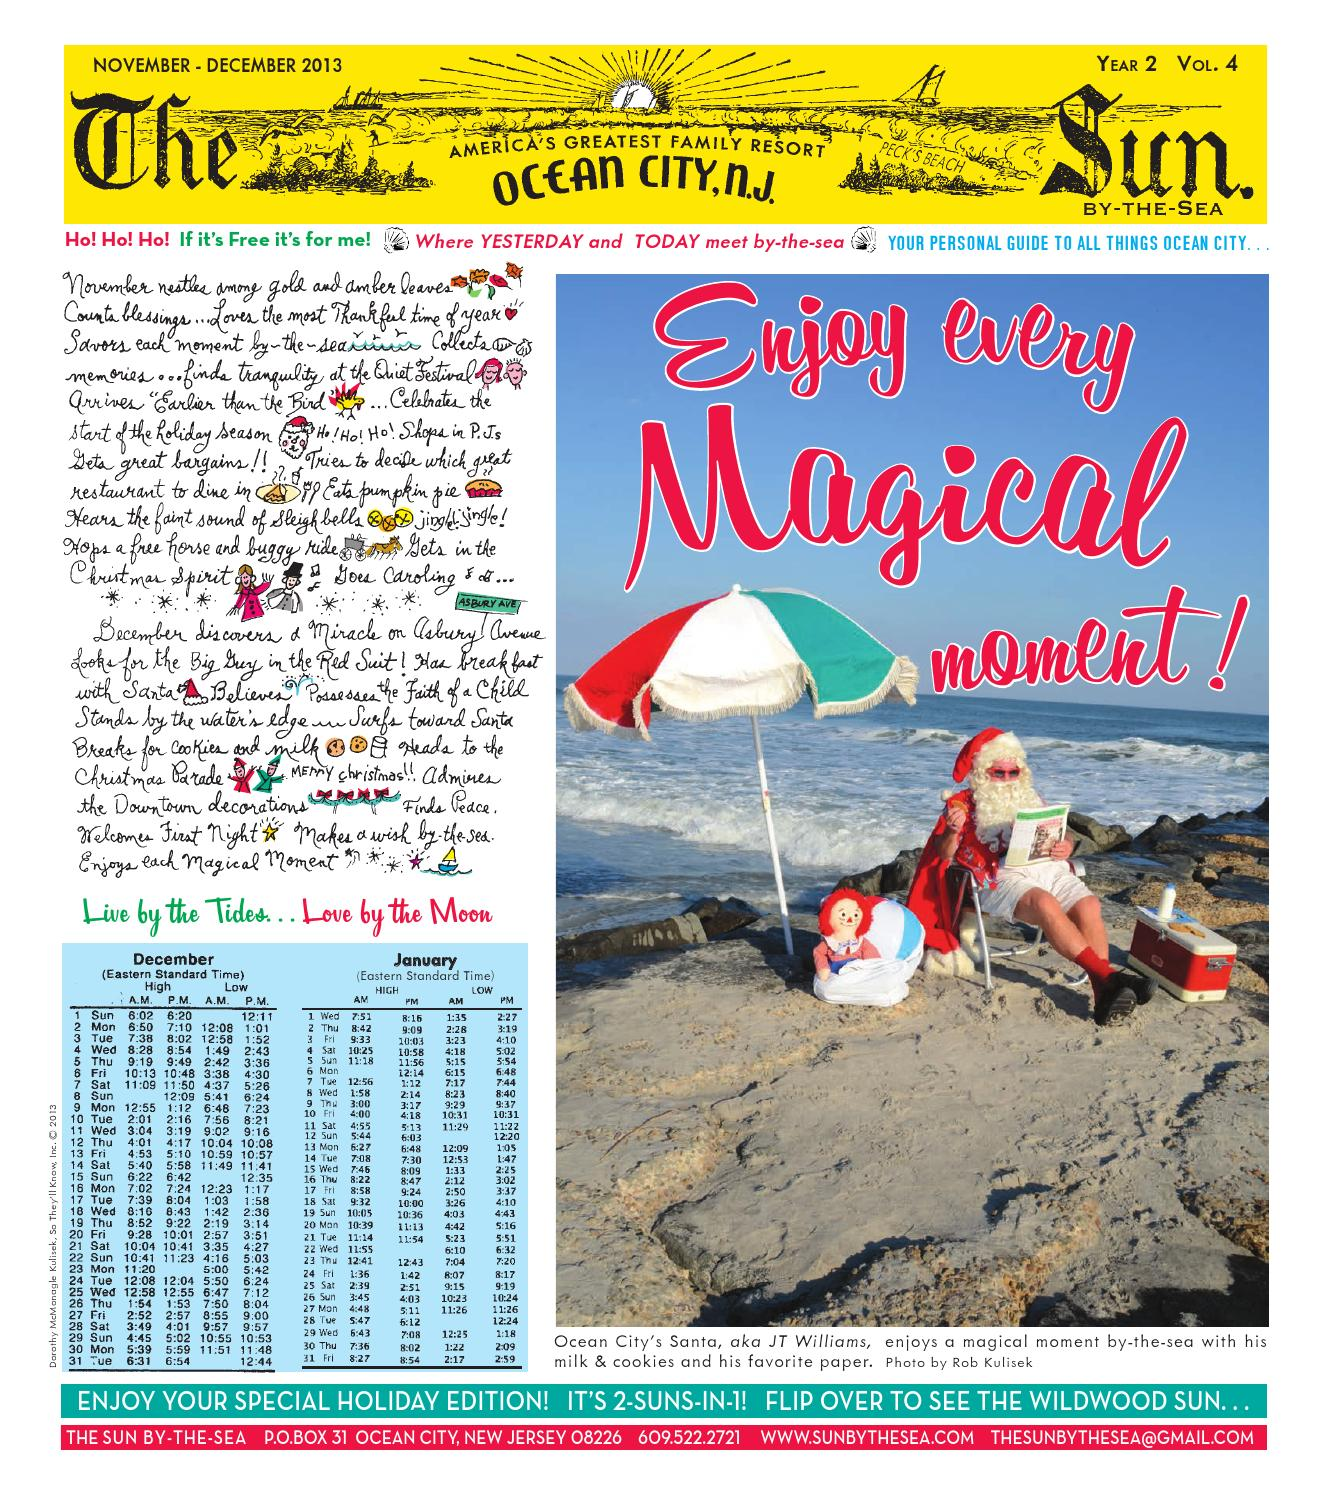 Enjoy Every Magical Ocean City Moment! by The Sun by-the-sea